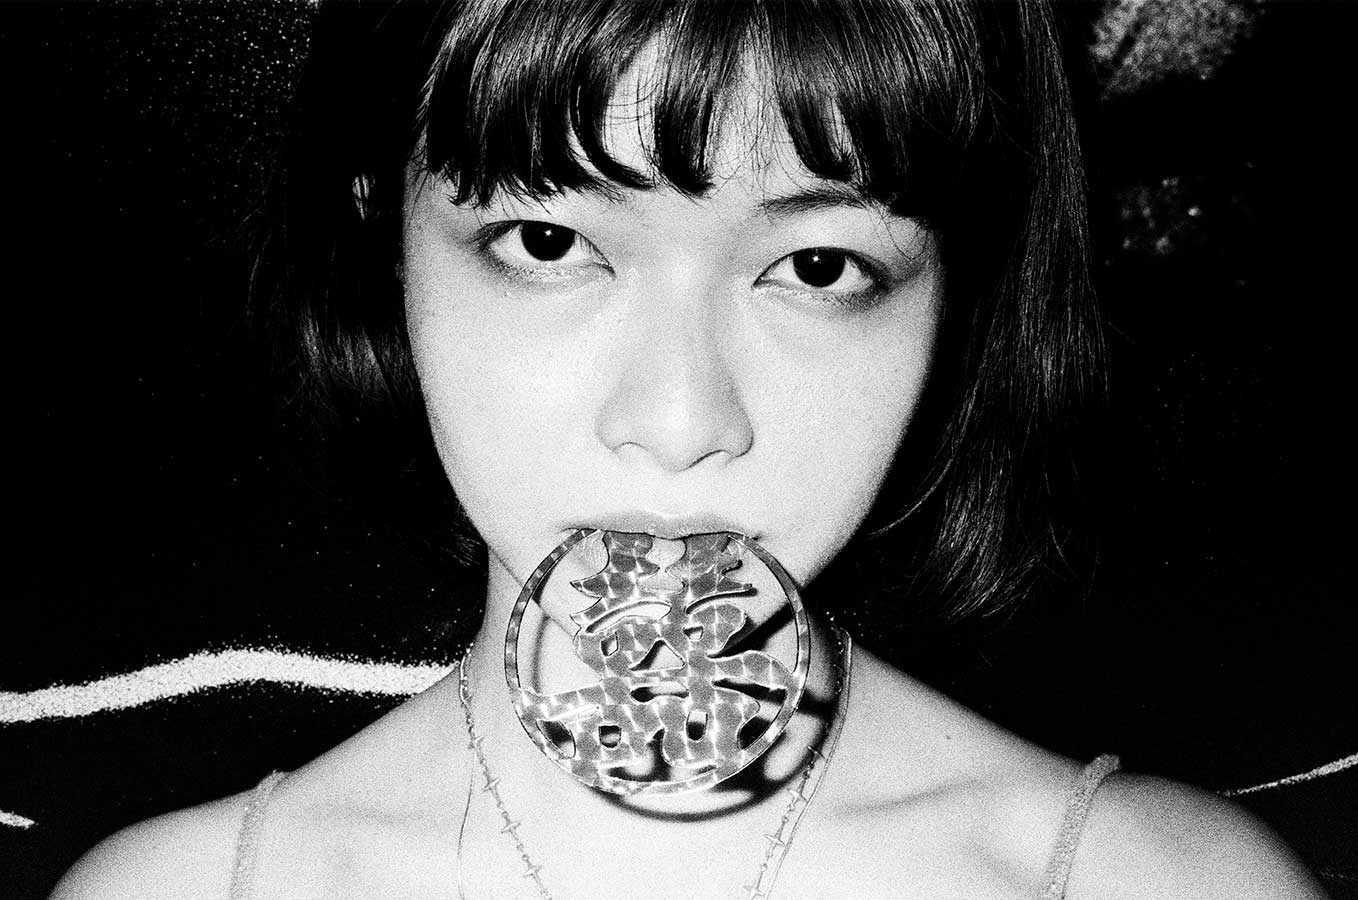 black and white photography, chihhan yang, 35mm photography, アナログ, self portrait photography